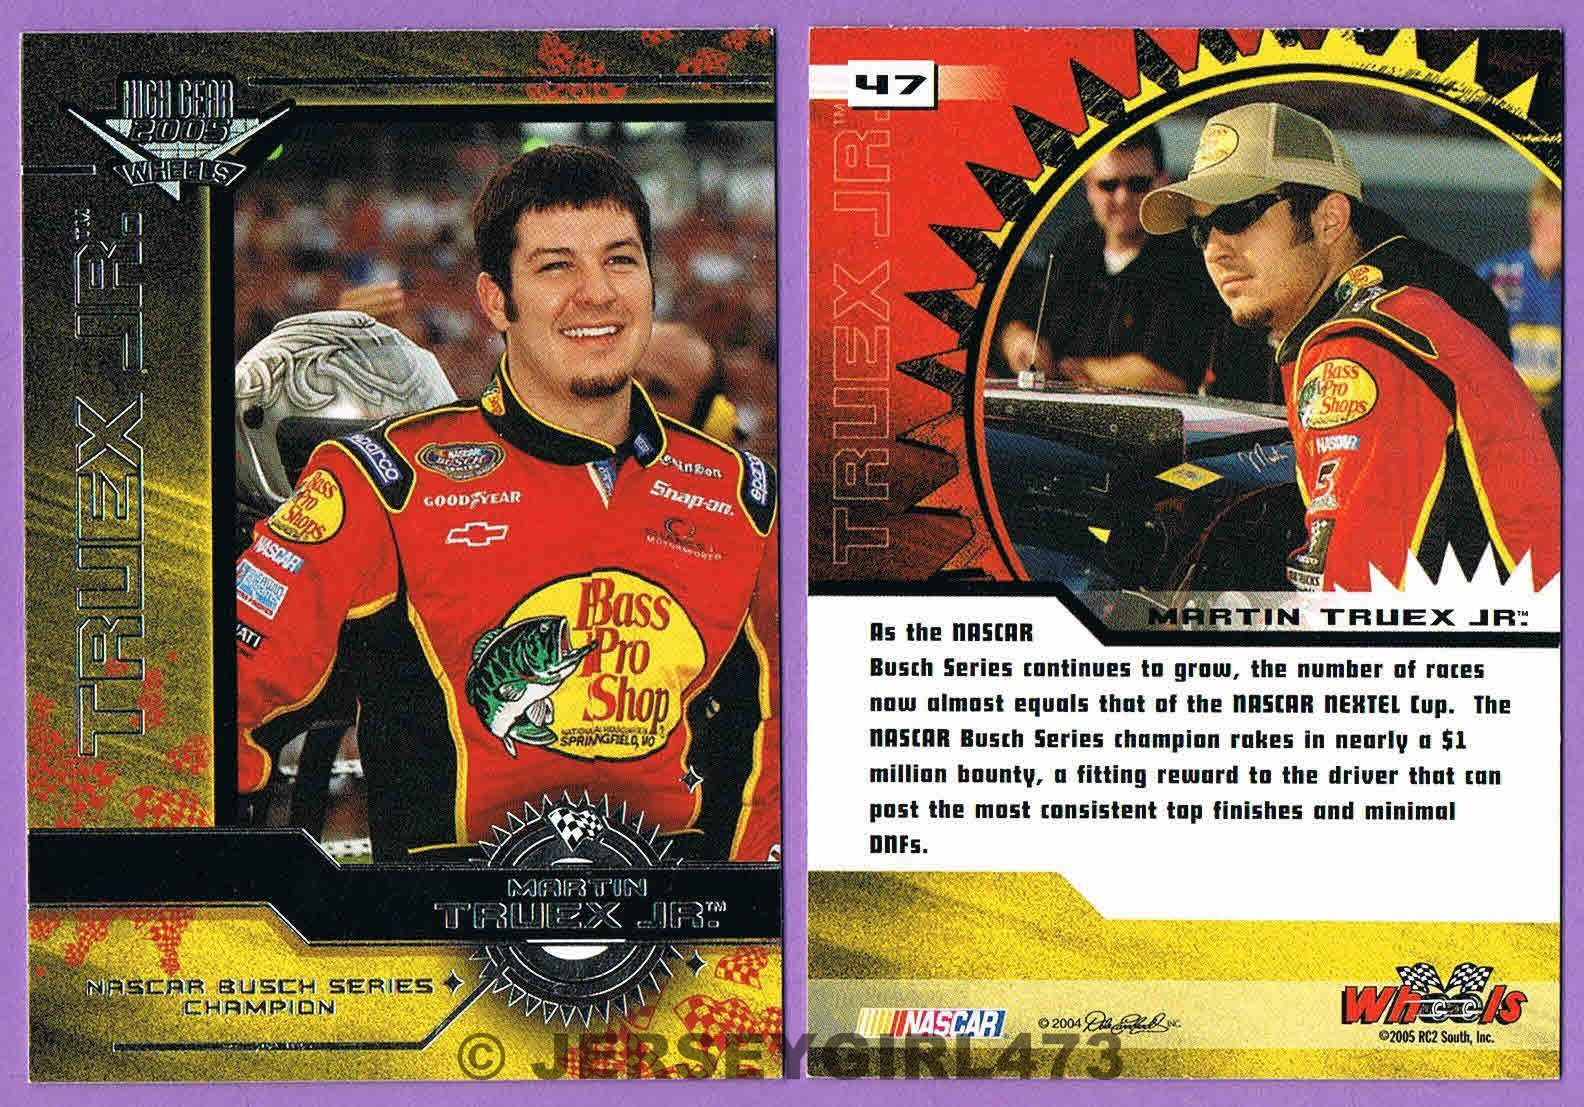 Martin Truex Jr. 2005 Wheels NBS Champion NASCAR Racing Card #47